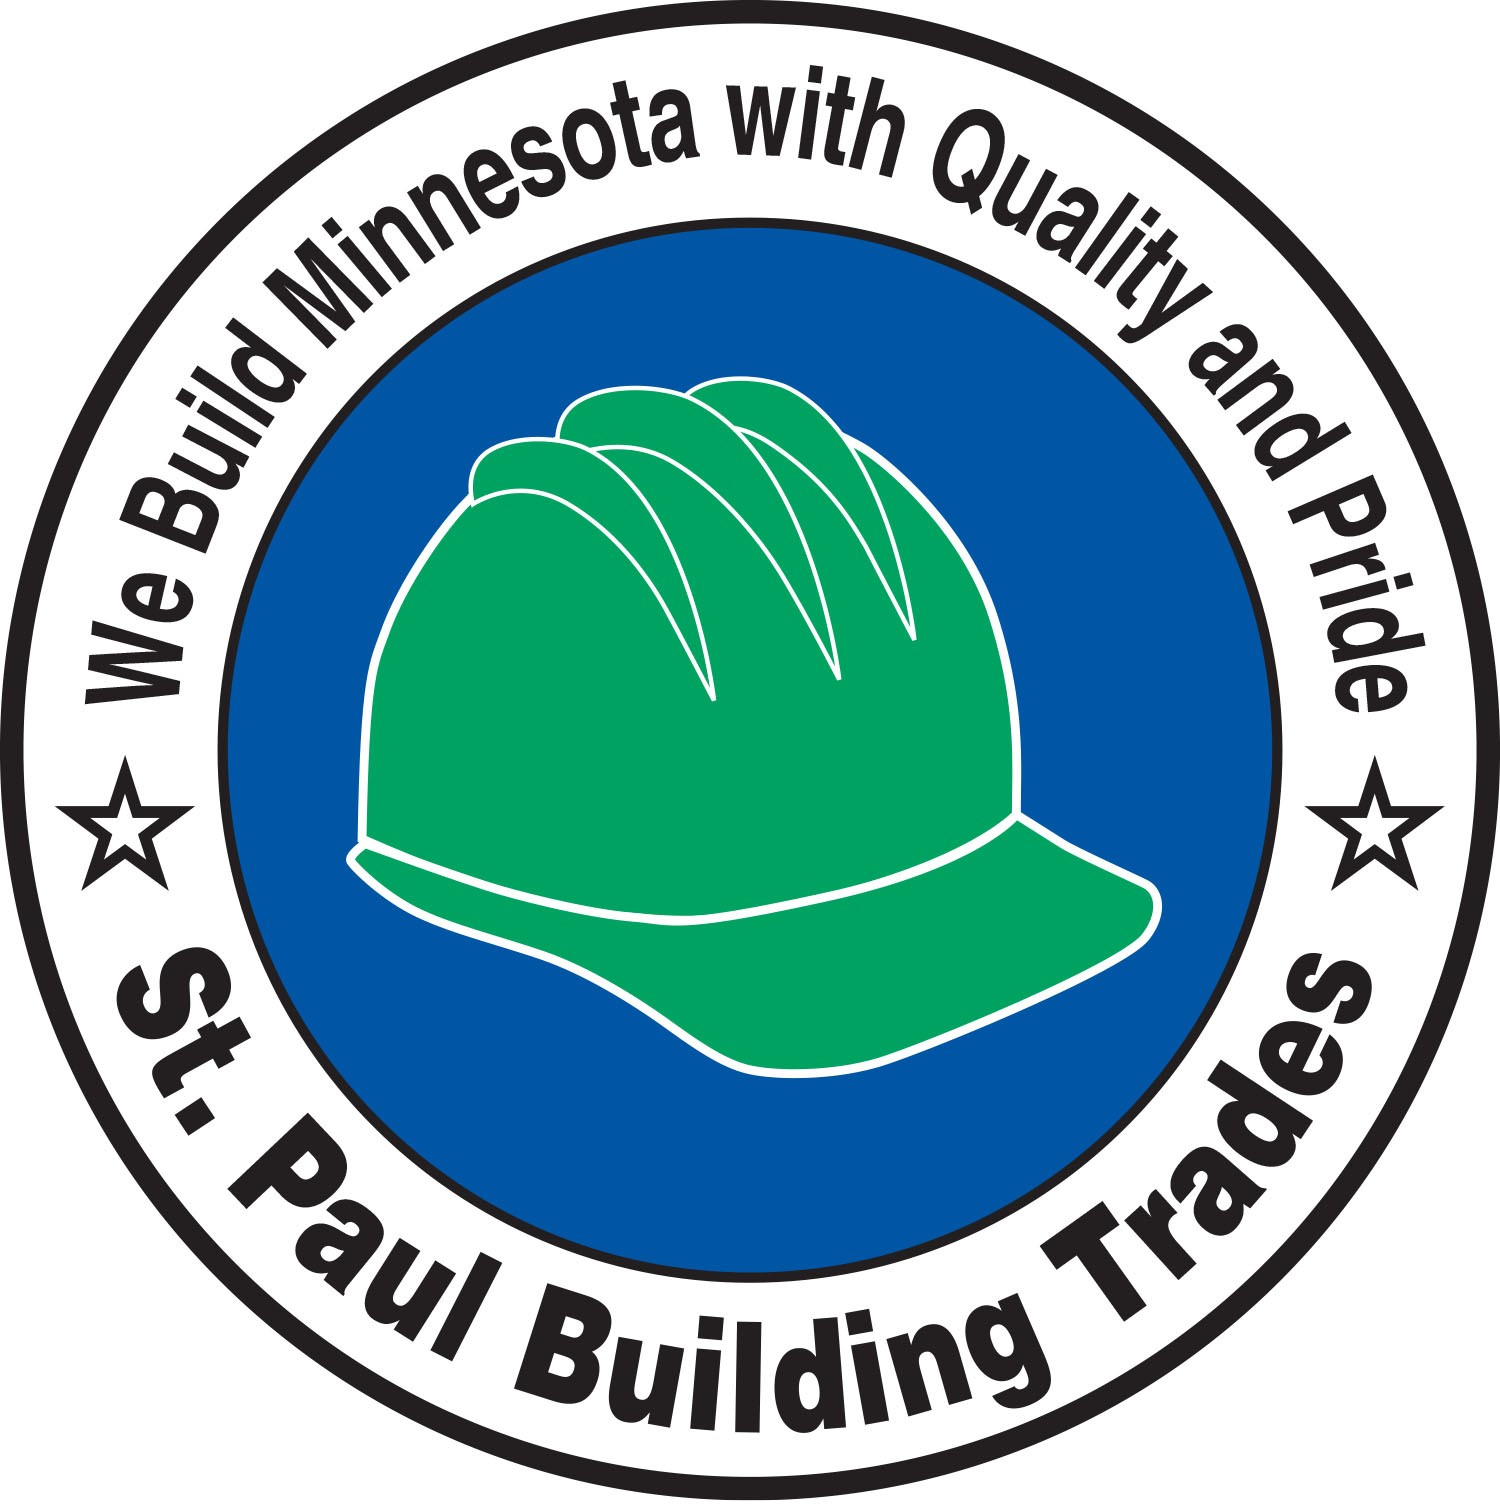 St Paul Building and Construction Trades Council